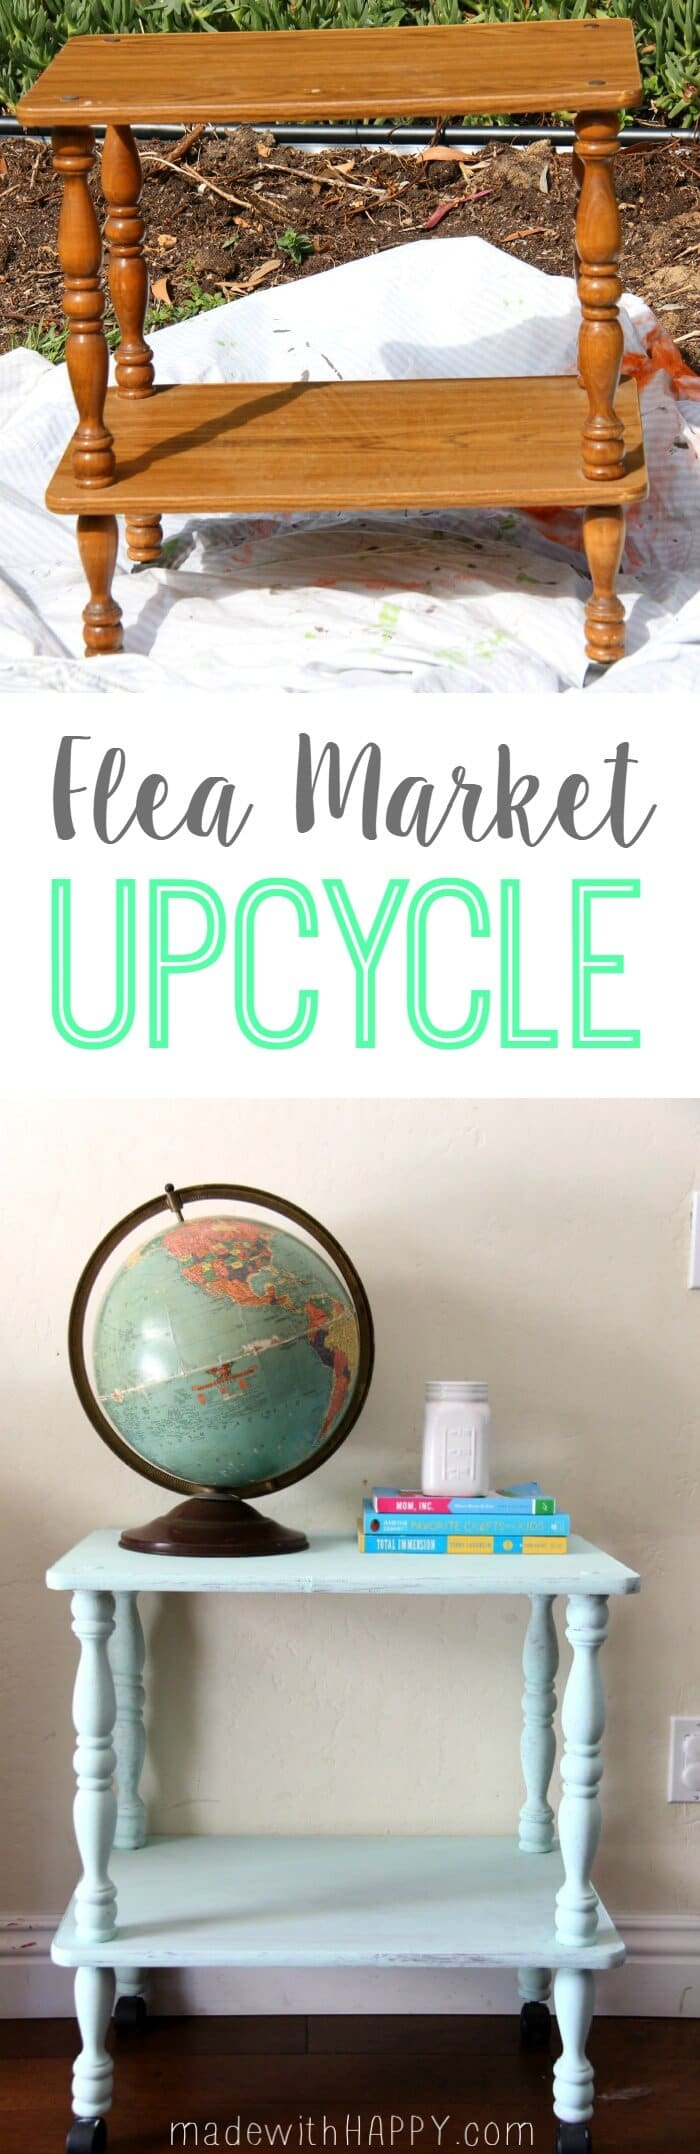 flea-market-upcycle